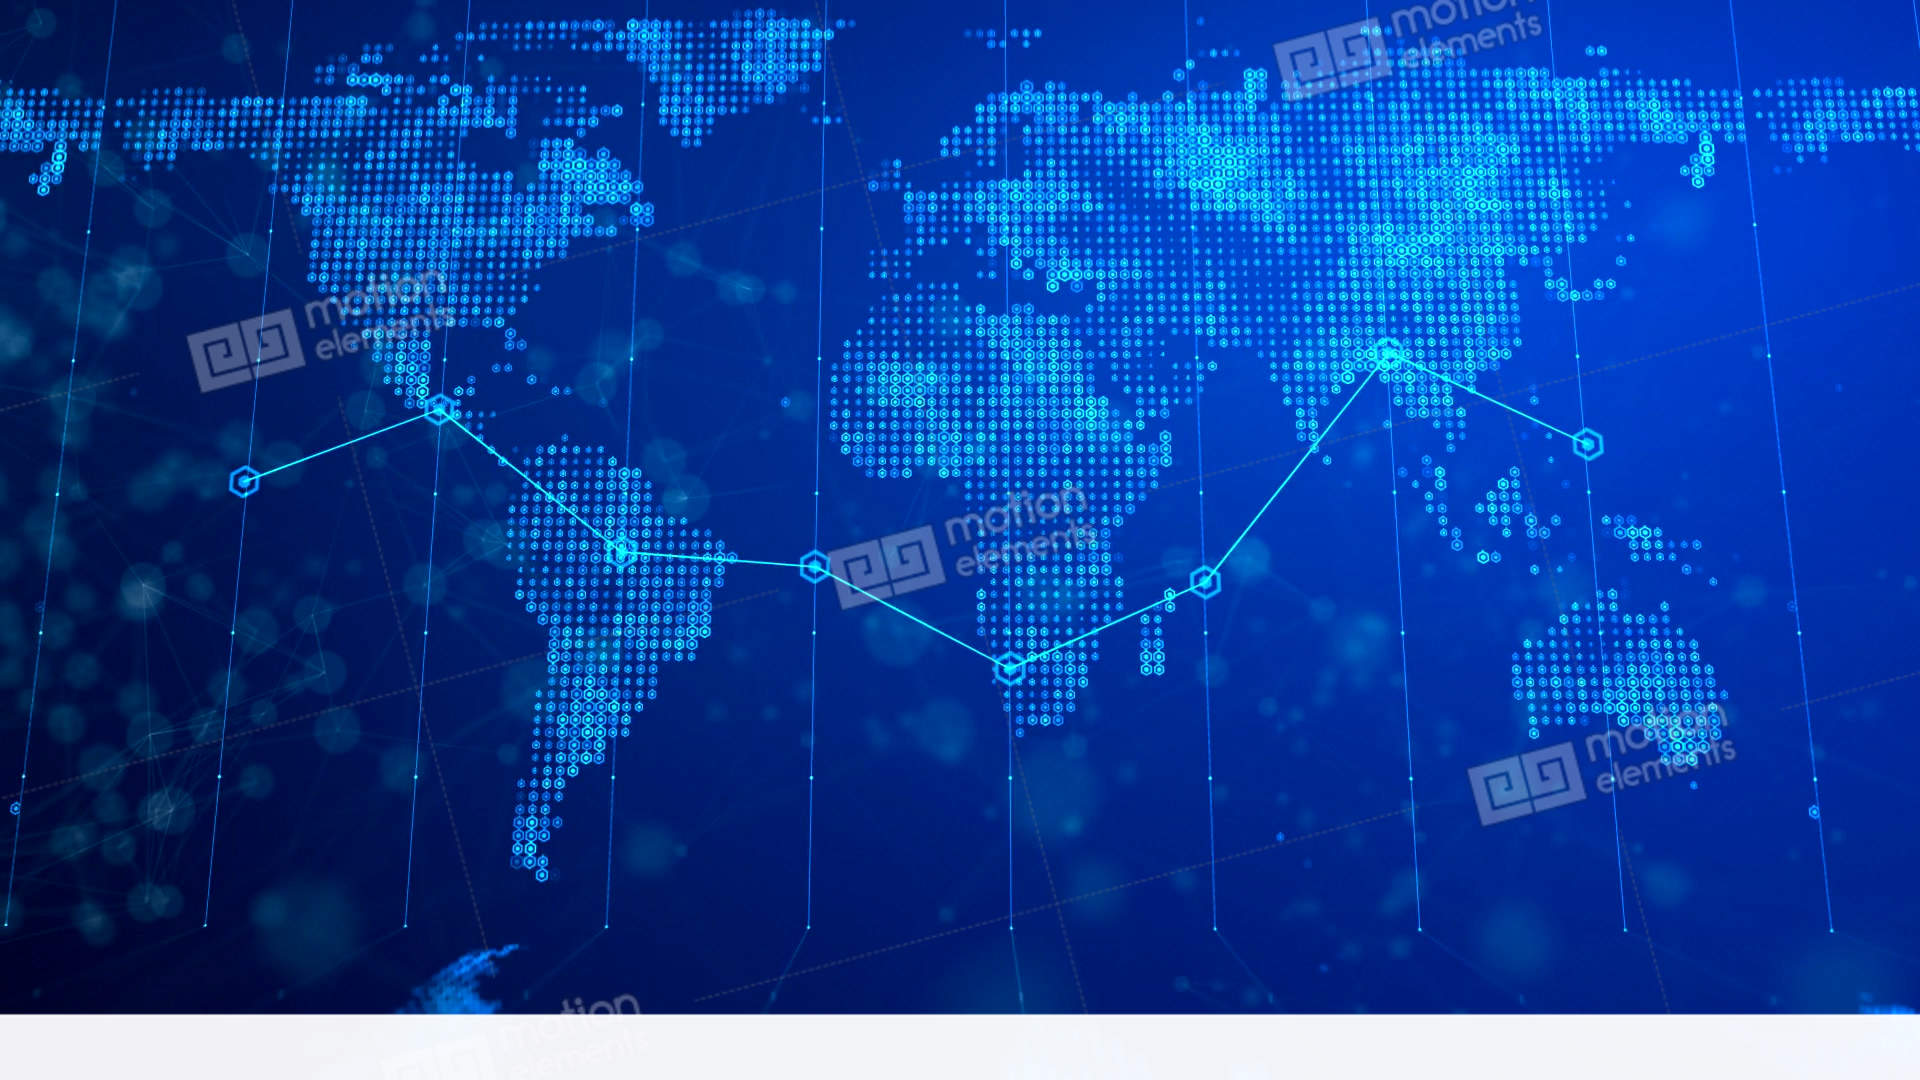 Digital world map background 02 stock animation 11465591 digital world map background 02 stock video footage gumiabroncs Choice Image